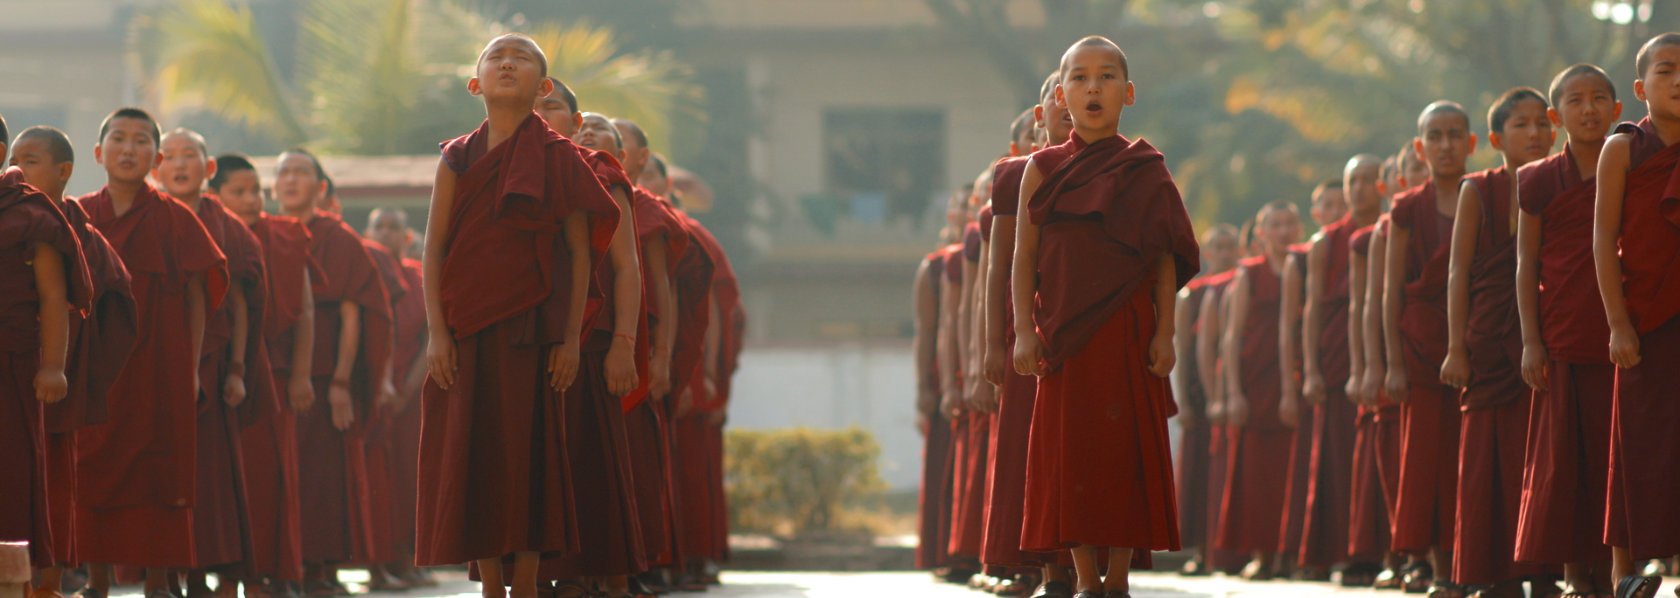 A group of young monks lining up for assembly - Saffron Heart - THIS Buddhist Film Festival